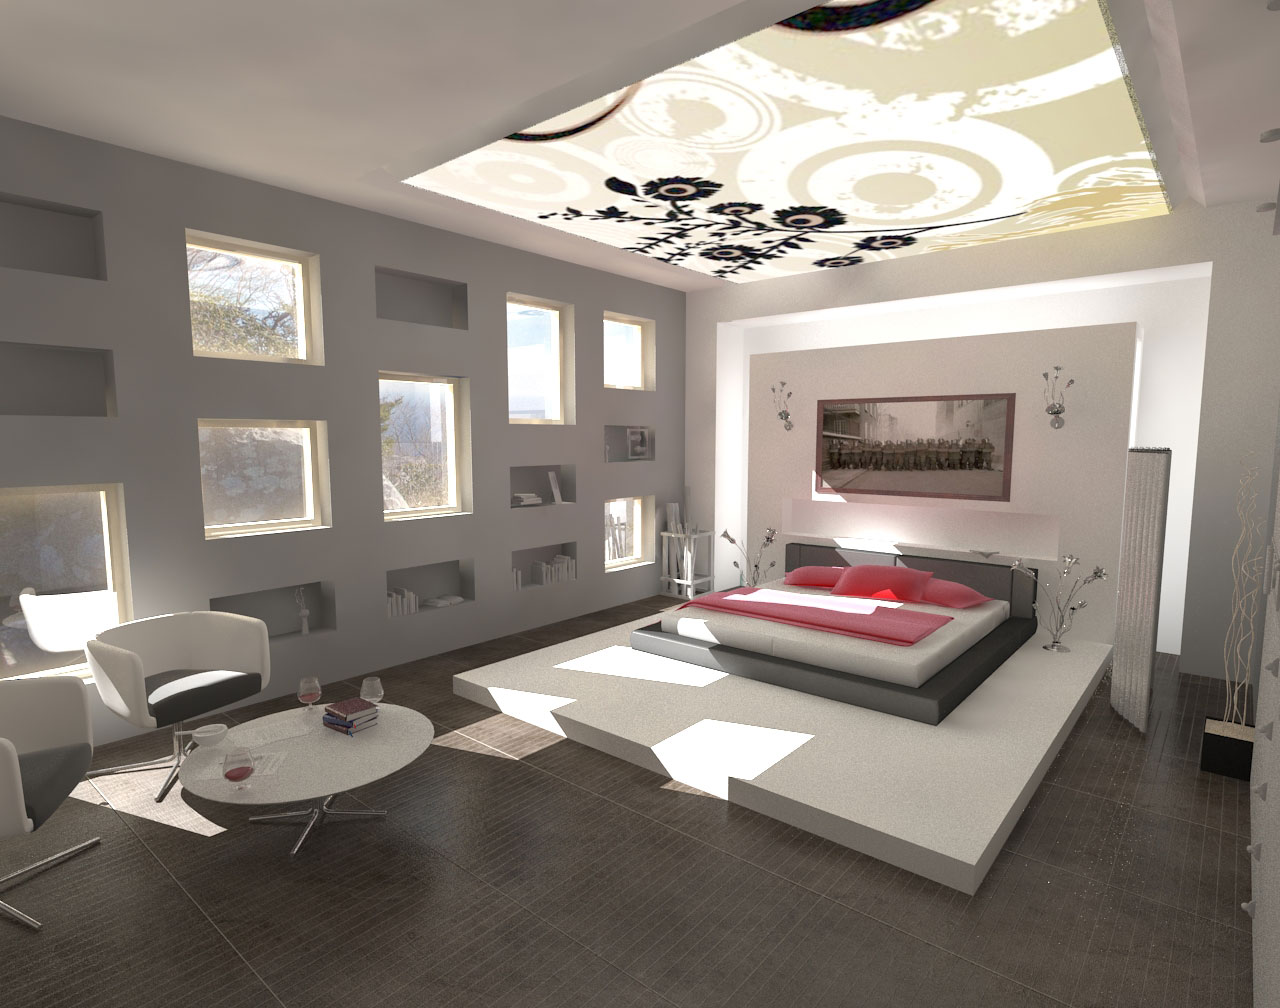 Amazing Modern Bedroom Interior Design Ideas 1280 x 1008 · 183 kB · jpeg